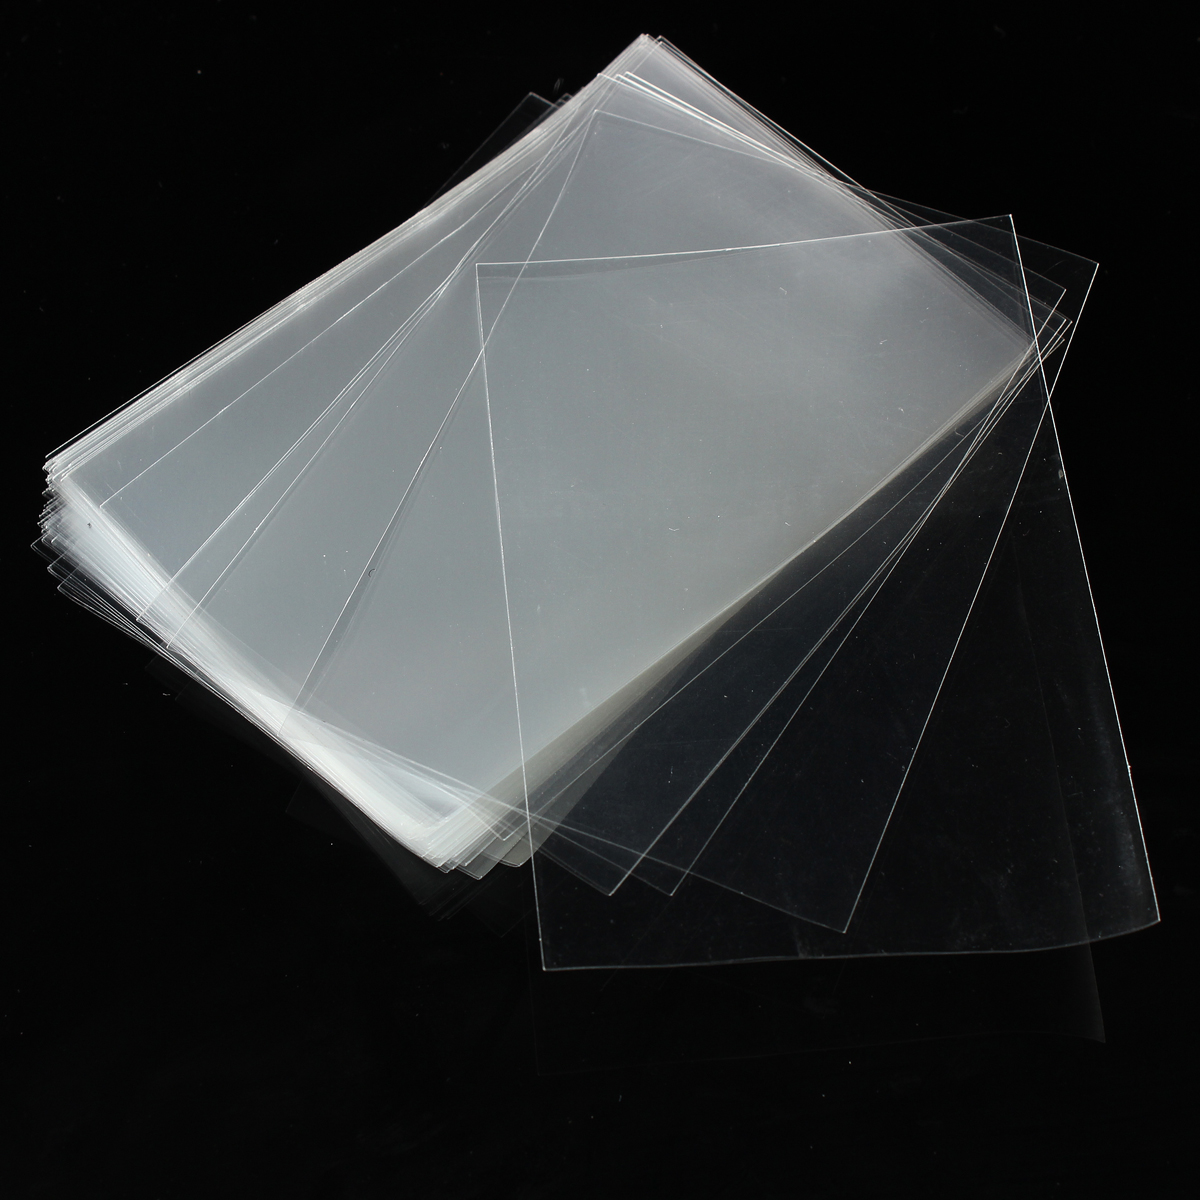 100 sleeves cello bags clear plastic bag cellophane 8 12cm for party gift candy. Black Bedroom Furniture Sets. Home Design Ideas